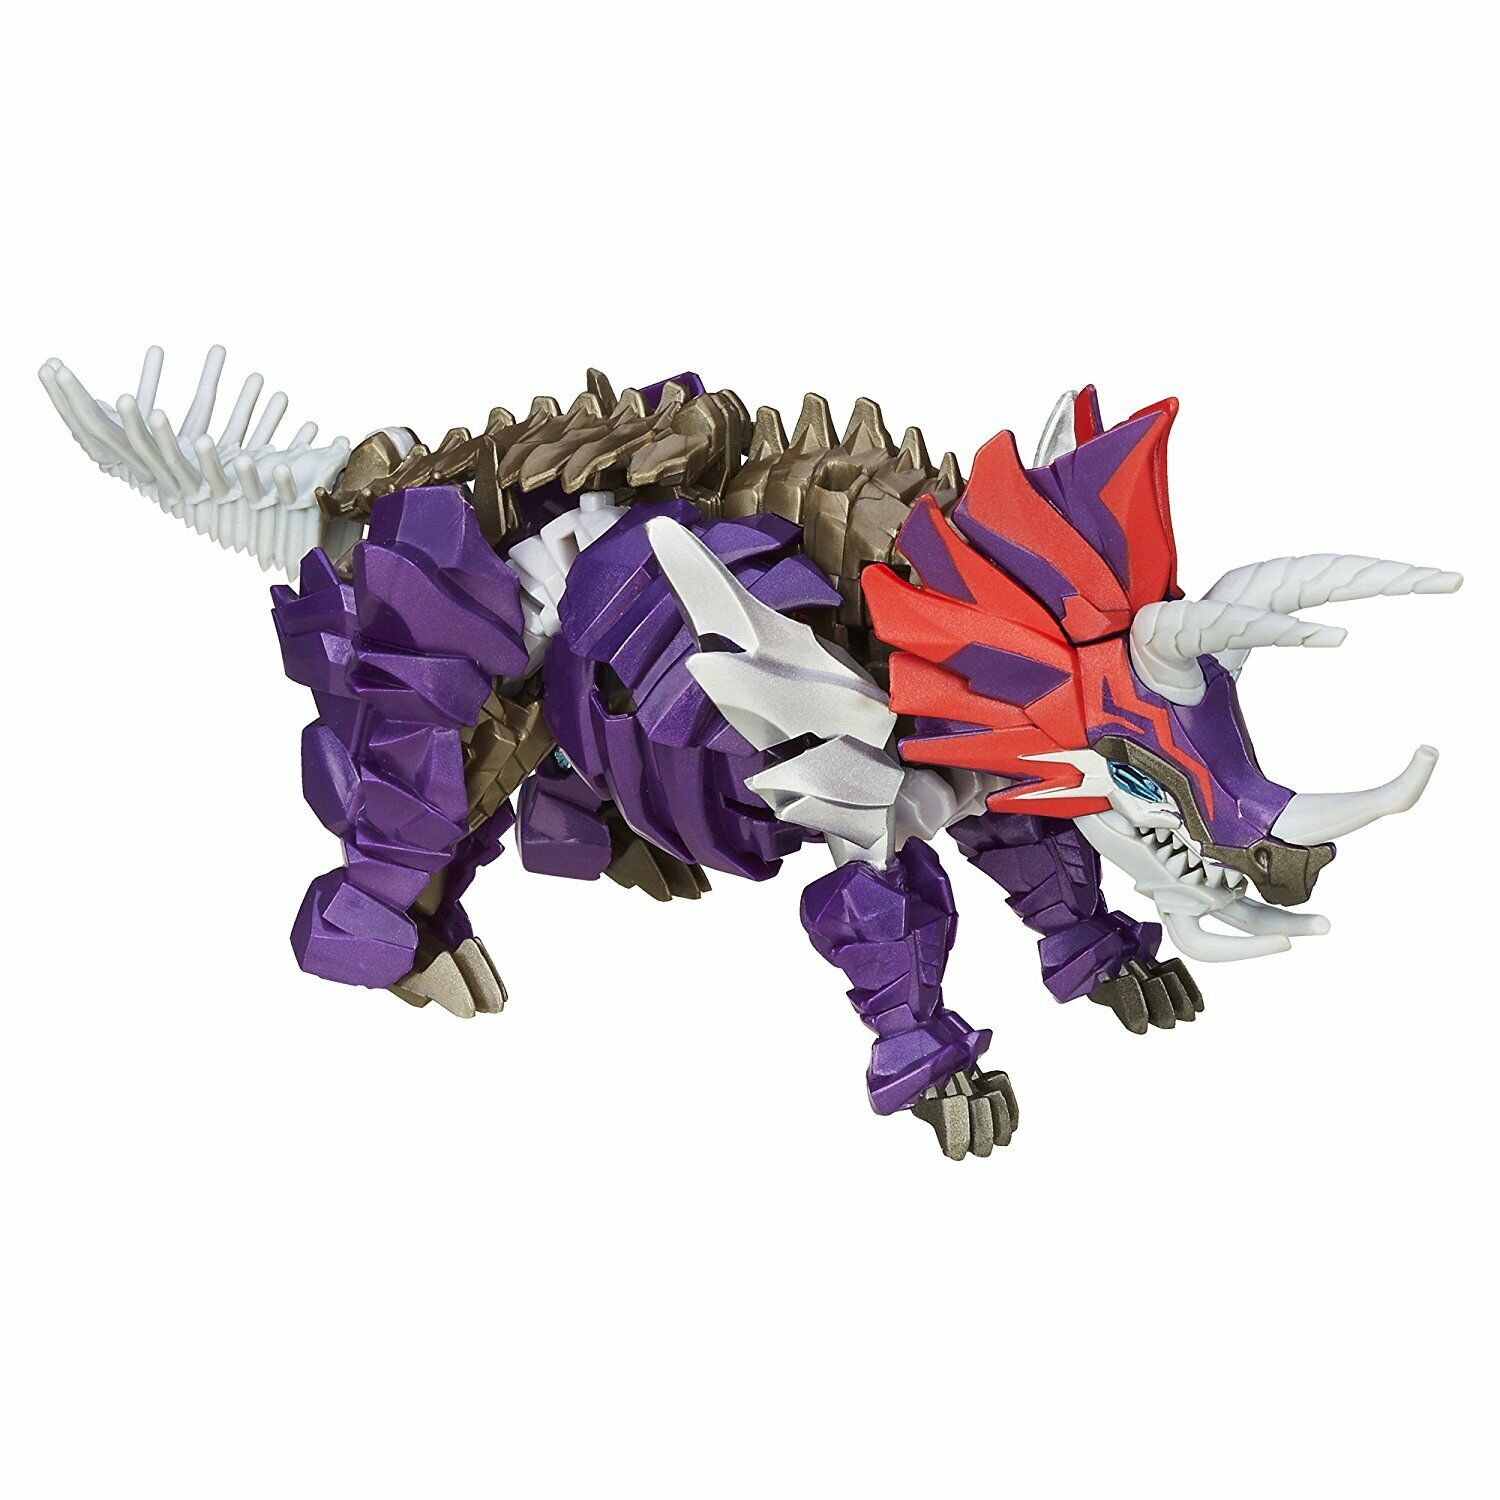 TRANSFORMERS AGE OF OF OF EXTINCTION GENERATIONS DELUXE CLASS DINOBOT SLUG FIGURE 9b6b4a